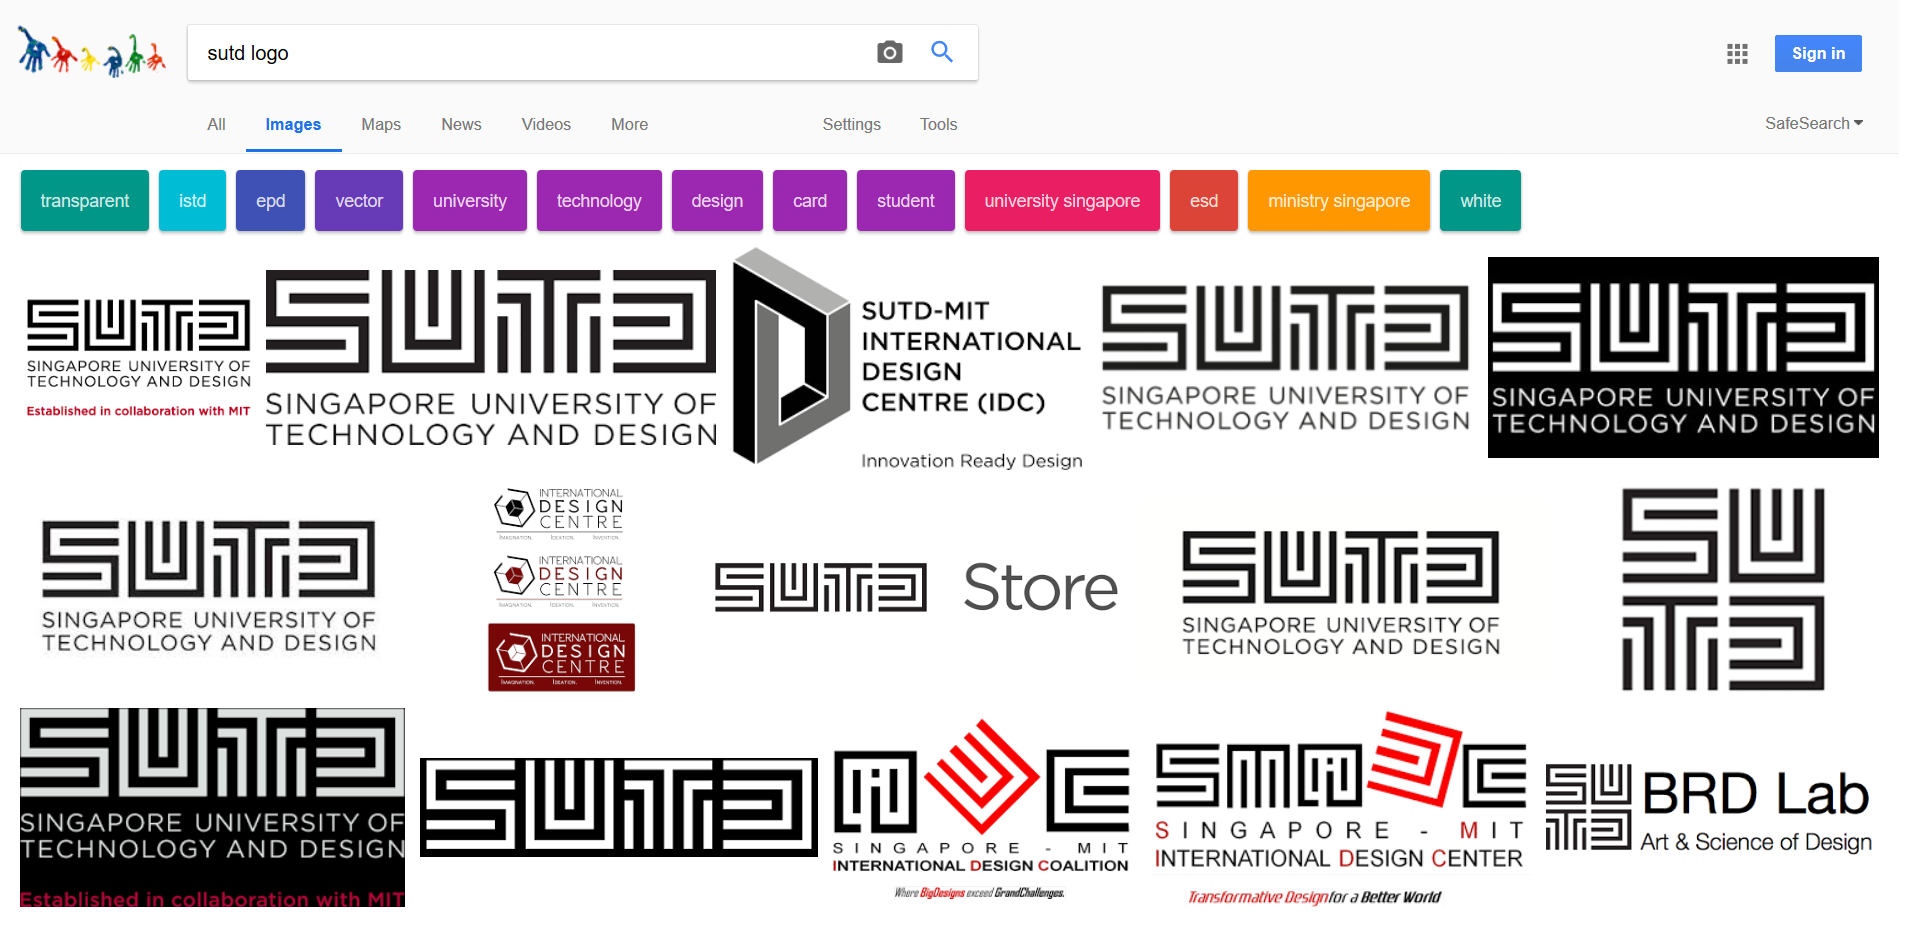 Google Image Search for the SUTD logo